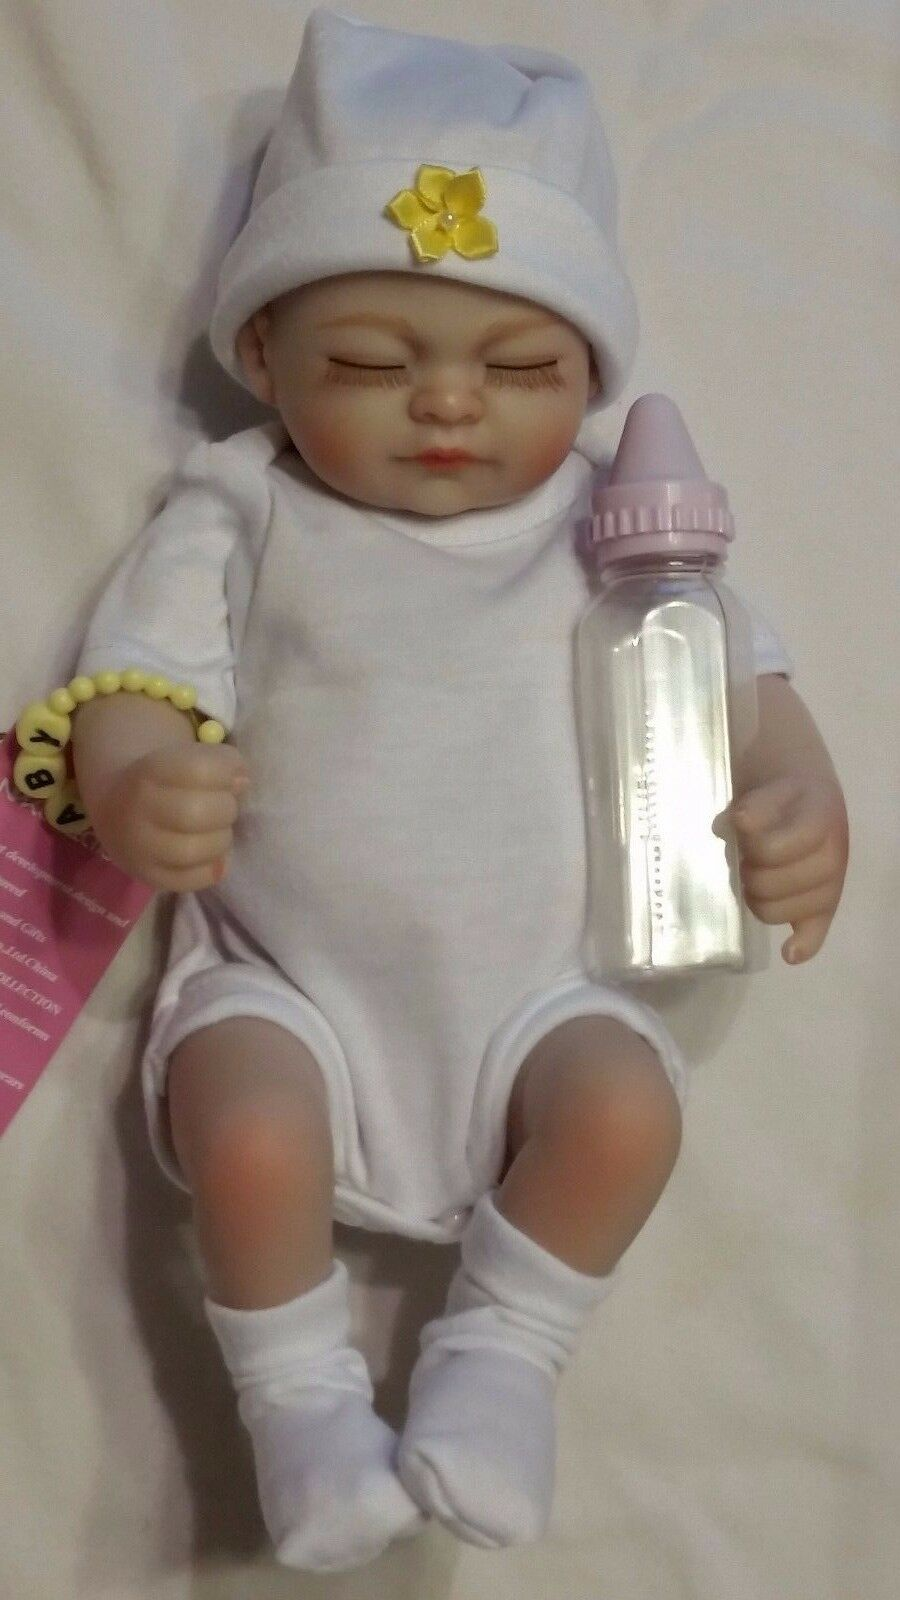 Adorable Sleeping Newborn Doll with Accessories Brand New with Box